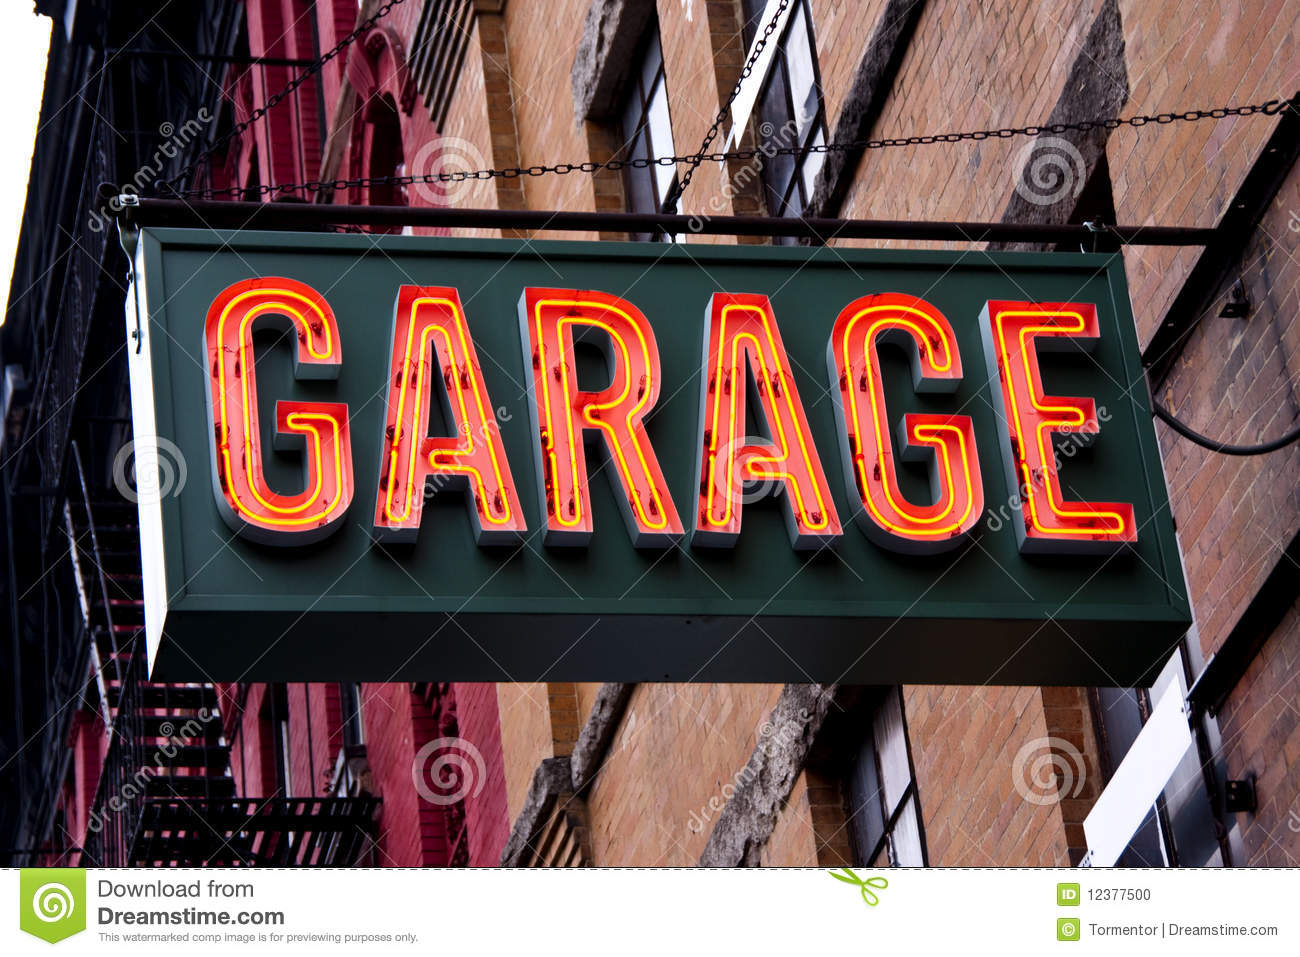 Garage Art Neon Signs Garage Neon Sign Stock Photo Image 12377500